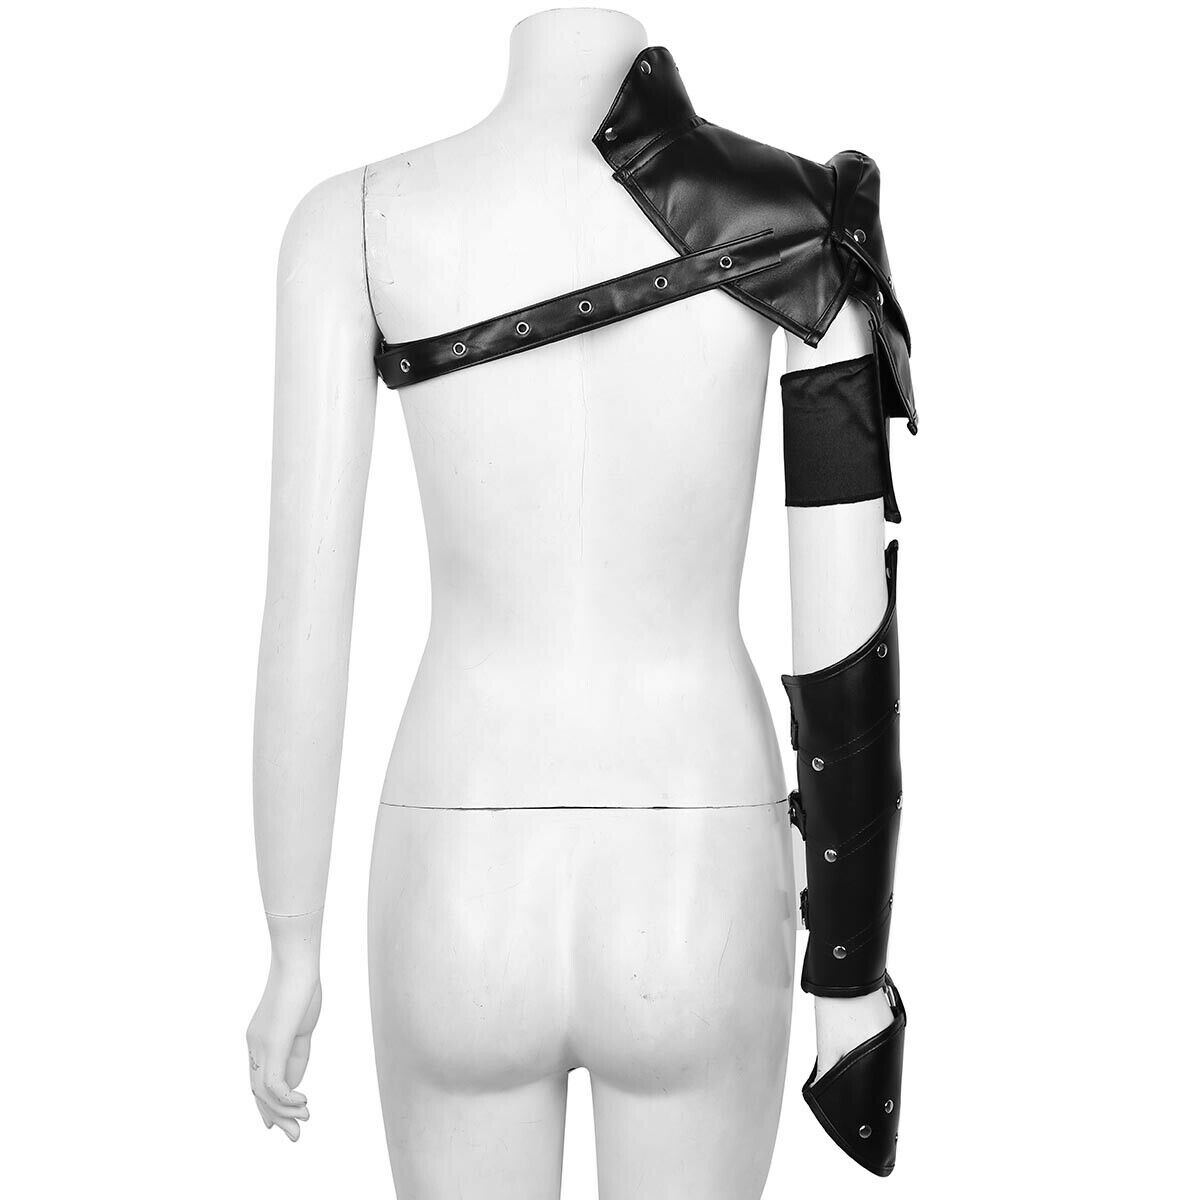 Gothic Steampunk Shoulder Armor with Arm Strap Set Cosplay Costume Accessory